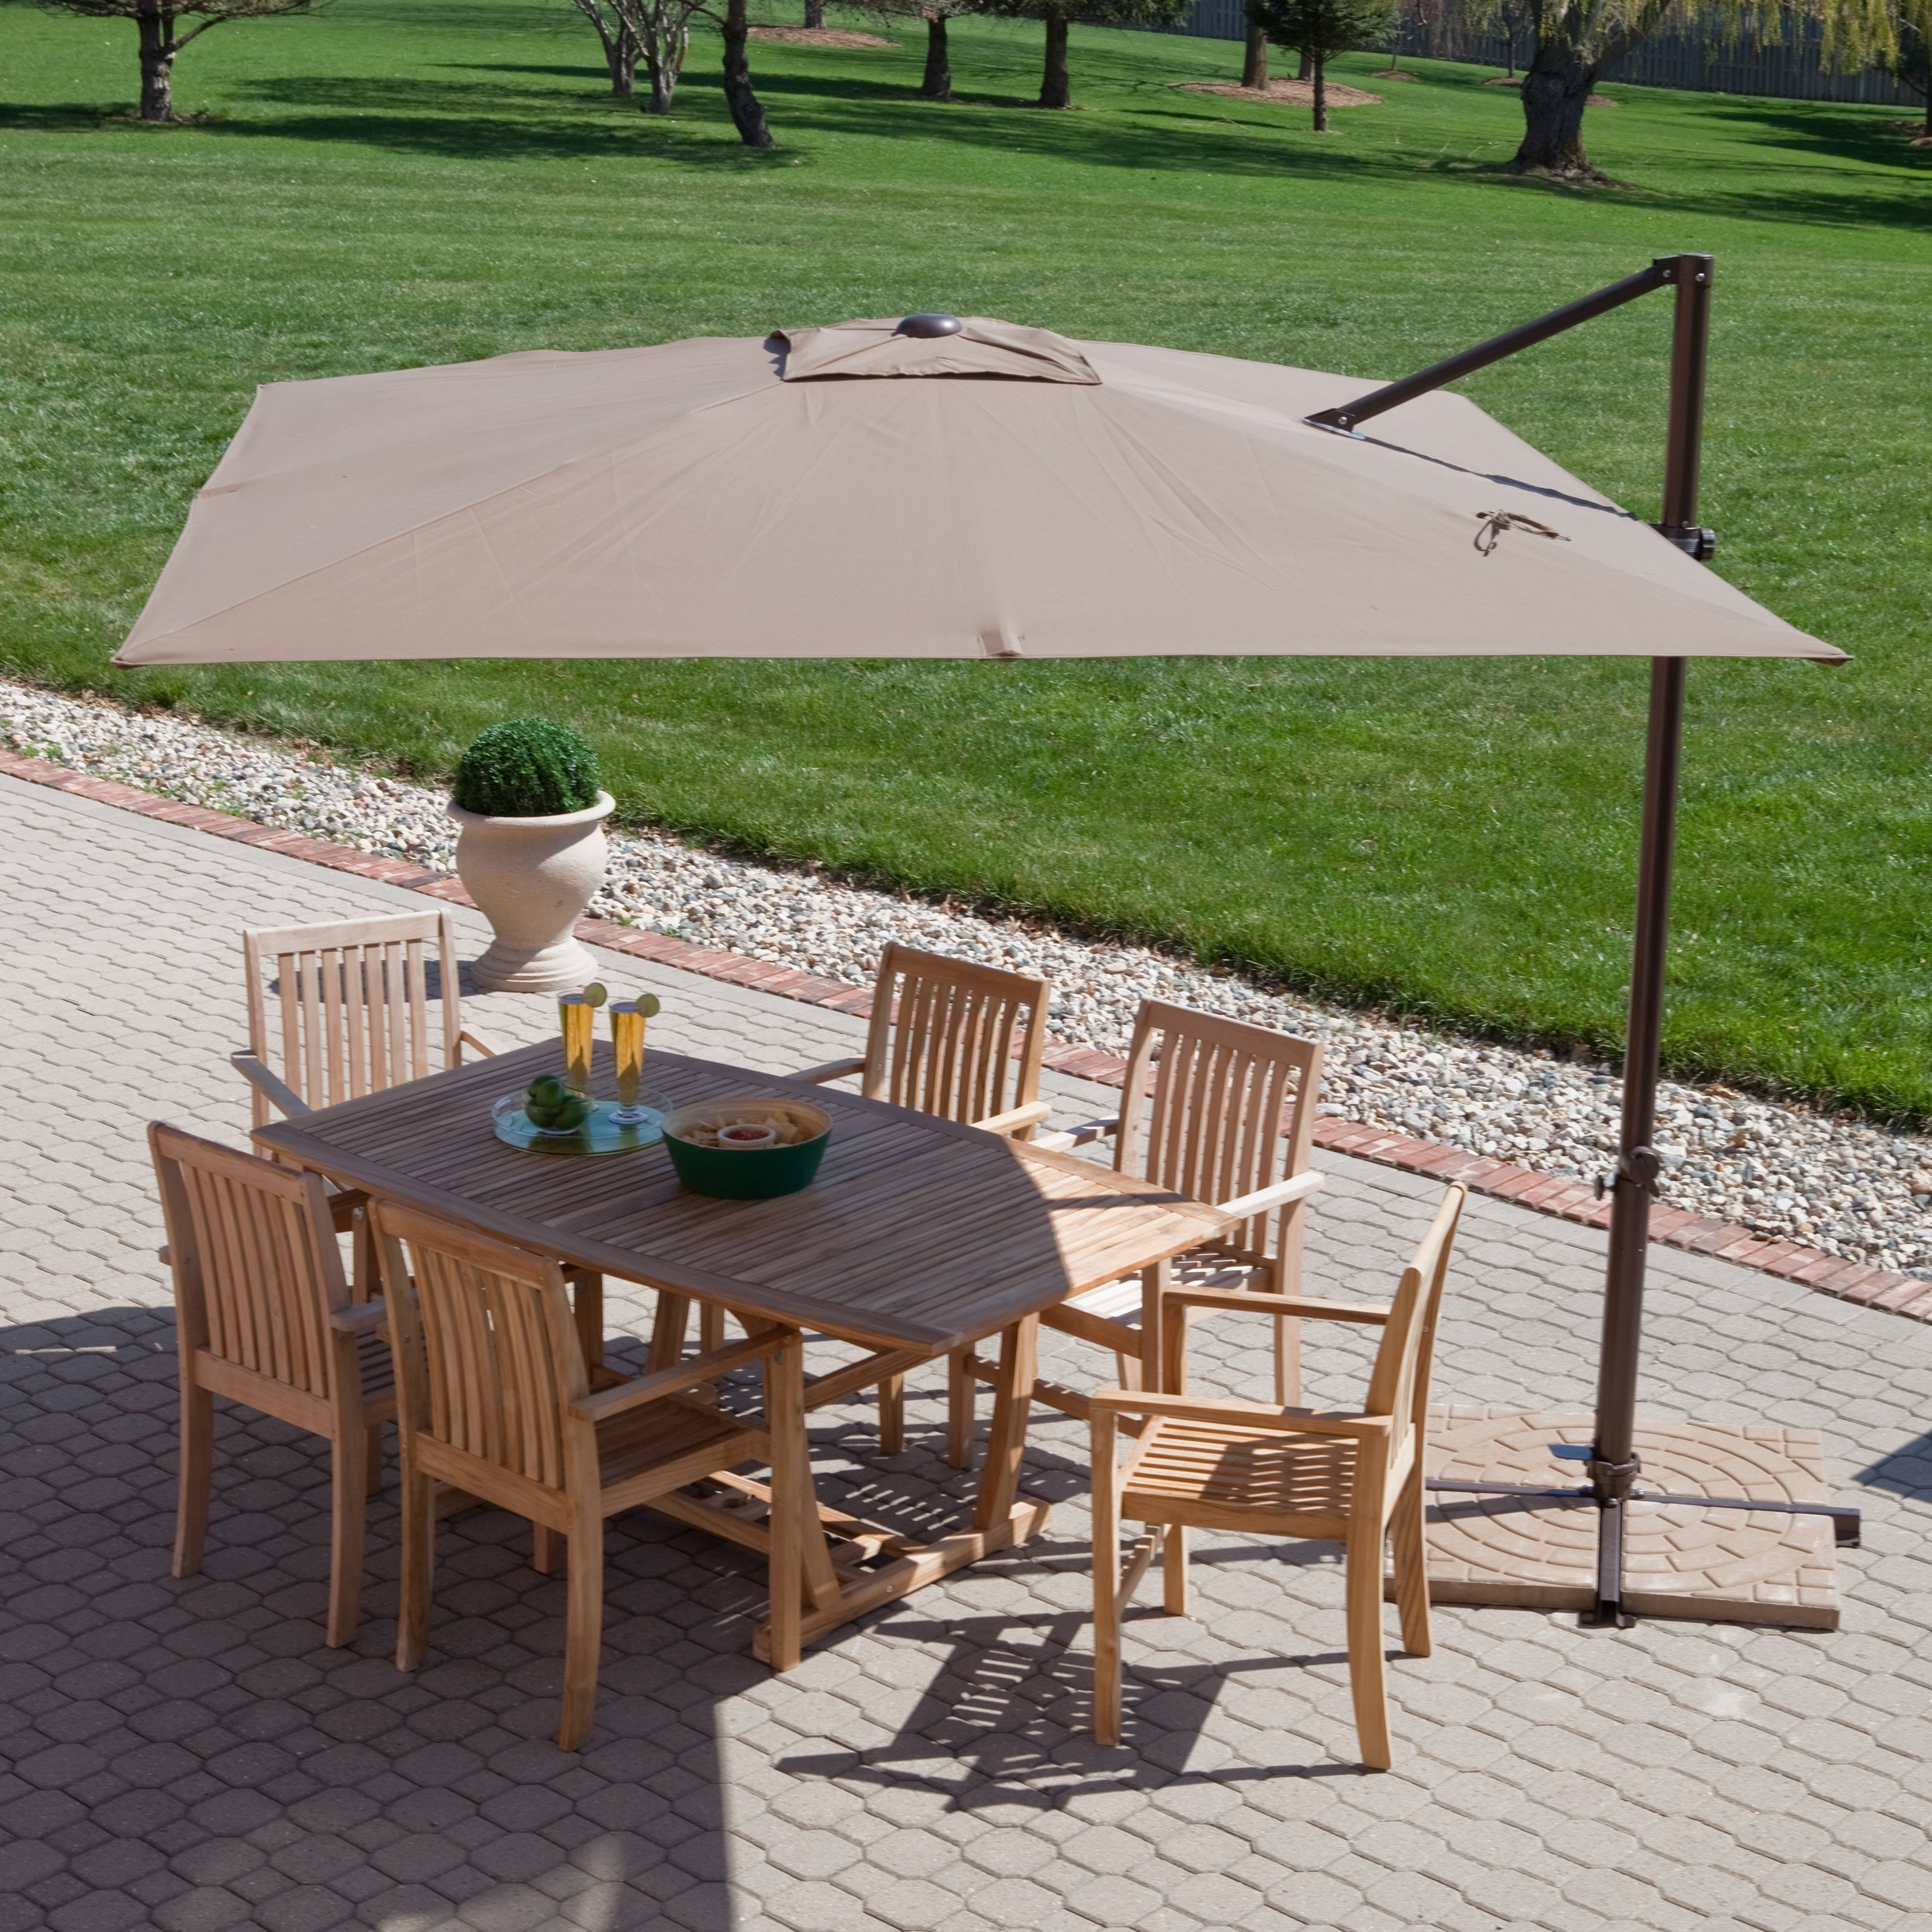 Square Mocha Fabric Patio Umbrella With Black Metal Base Over Brown Intended For Latest Rectangle Patio Umbrellas (View 17 of 20)